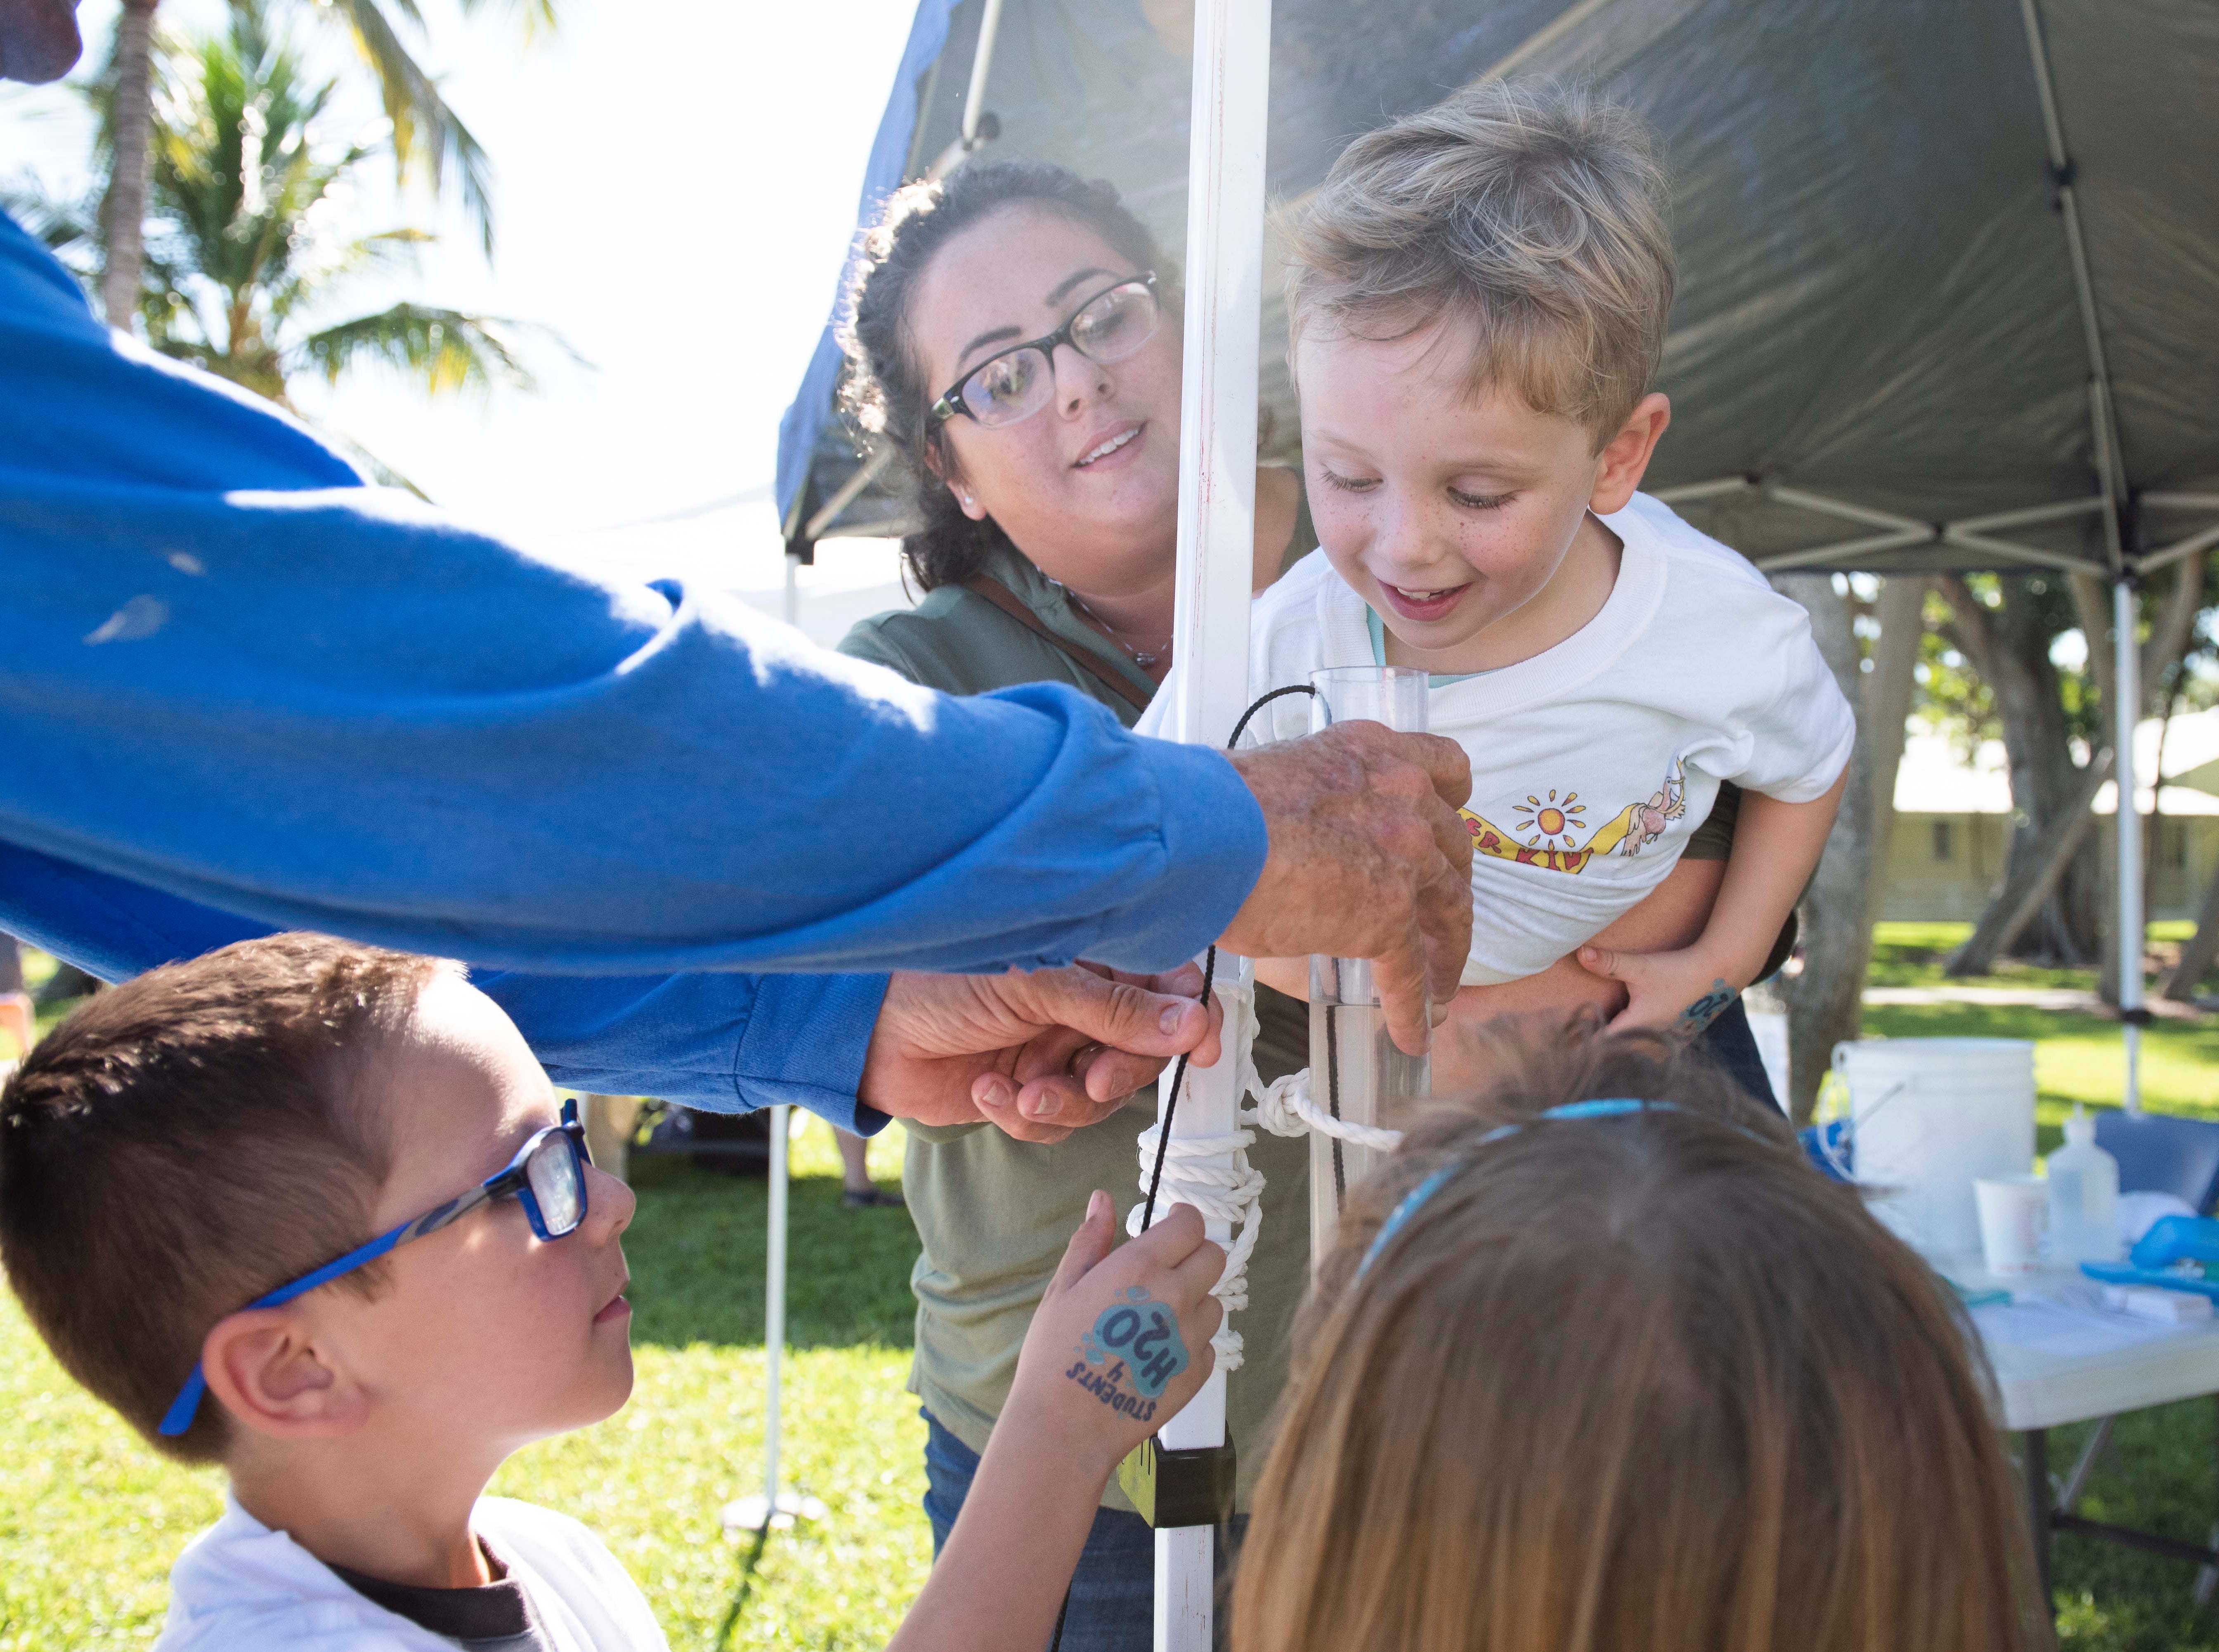 Florida Oceanographic Society's Rally for the River was held on Saturday, October 13, 2018, in Flagler Park in downtown Stuart. Visitors got the chance to tour downtown Stuart's living oyster reef, participate in water quality and oyster bagging demonstrations, and meet local water experts to learn about water-related problems, including toxic algae and red tide.